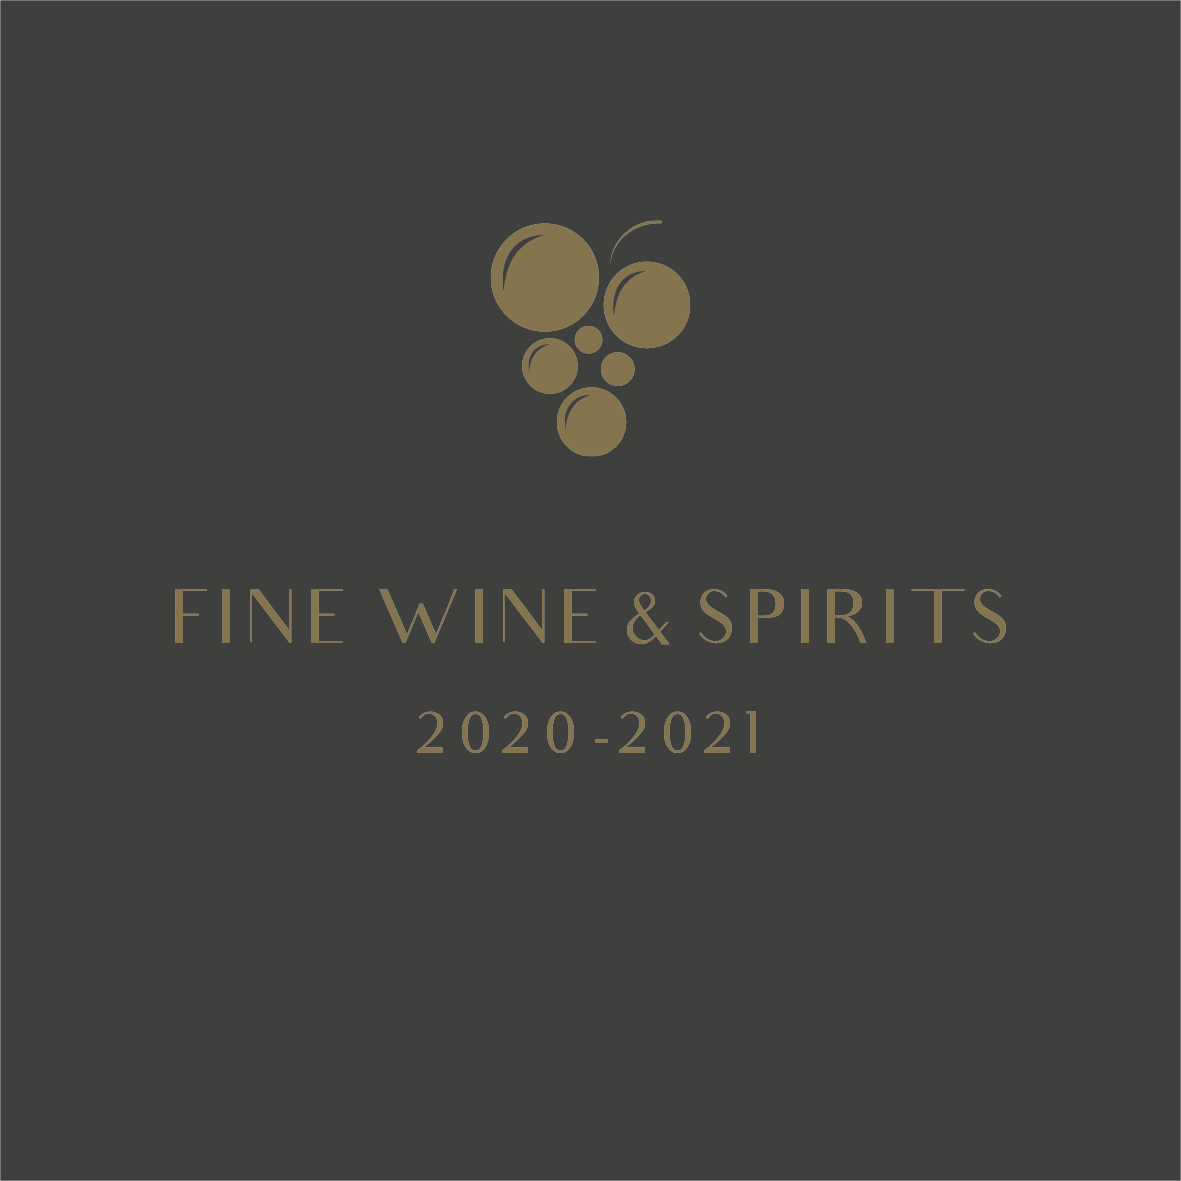 OUR WINE LIST